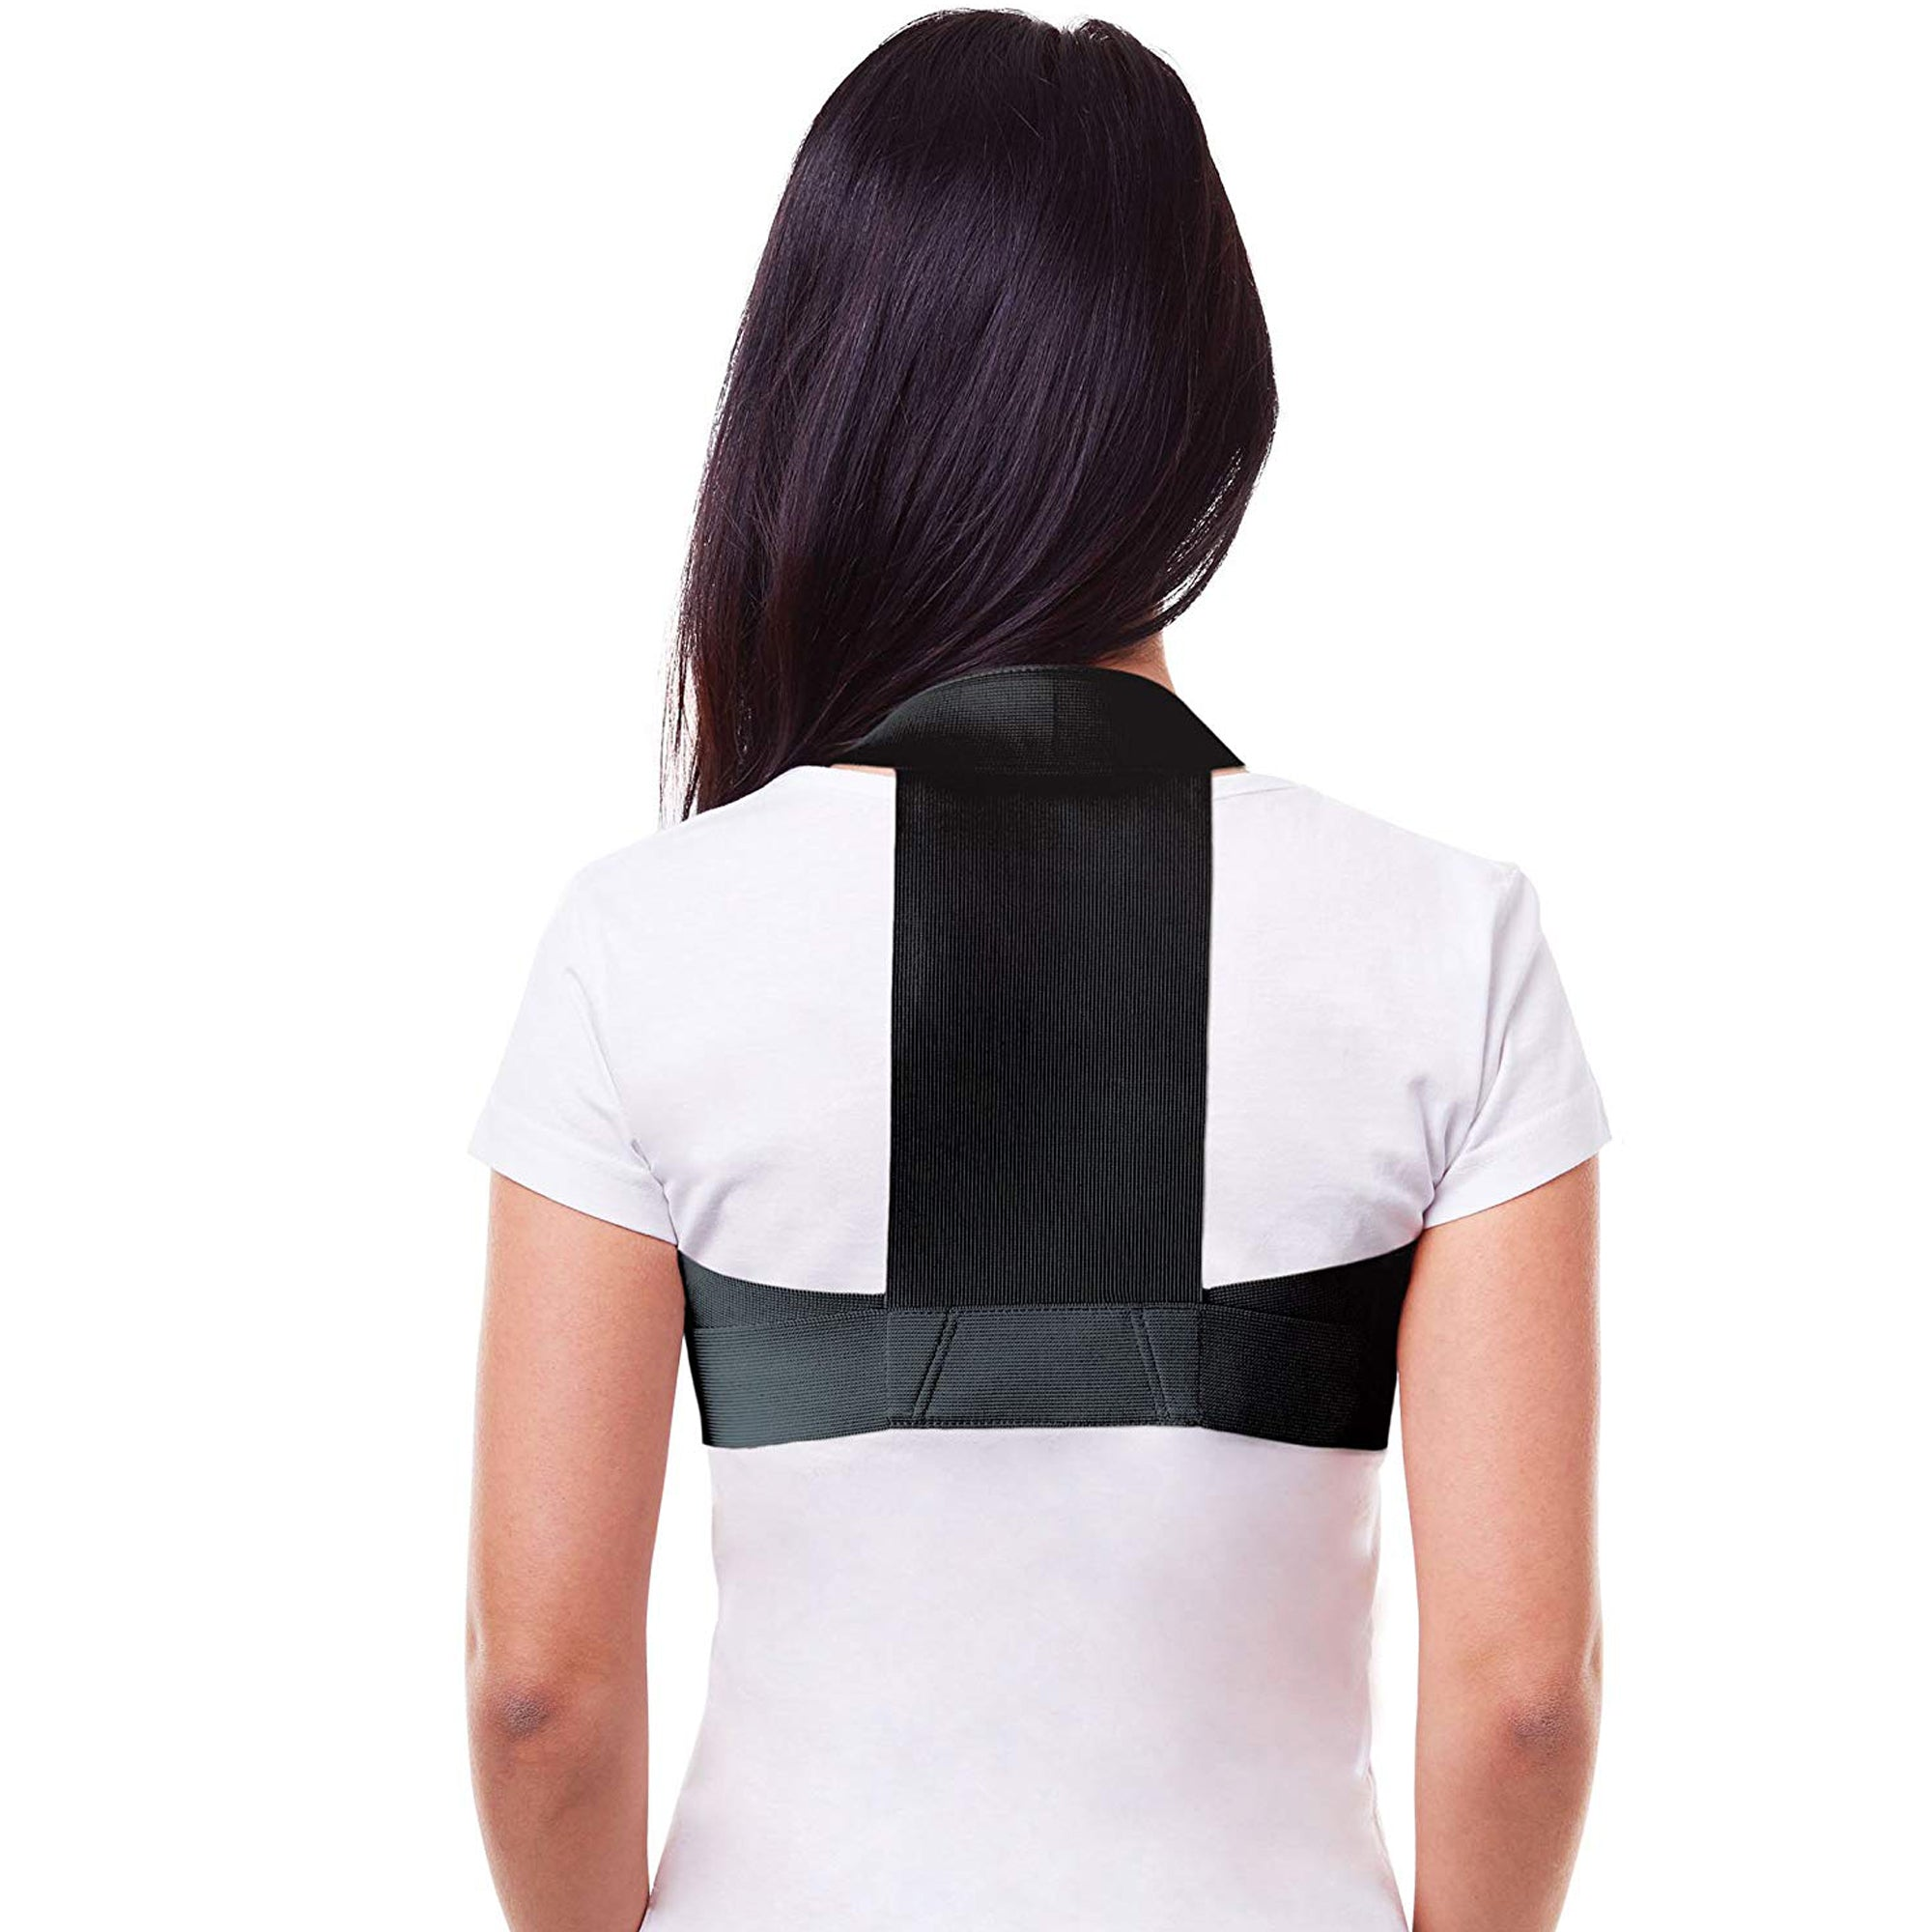 Elastic Upper Back Posture Corrector & Clavicle Support Brace